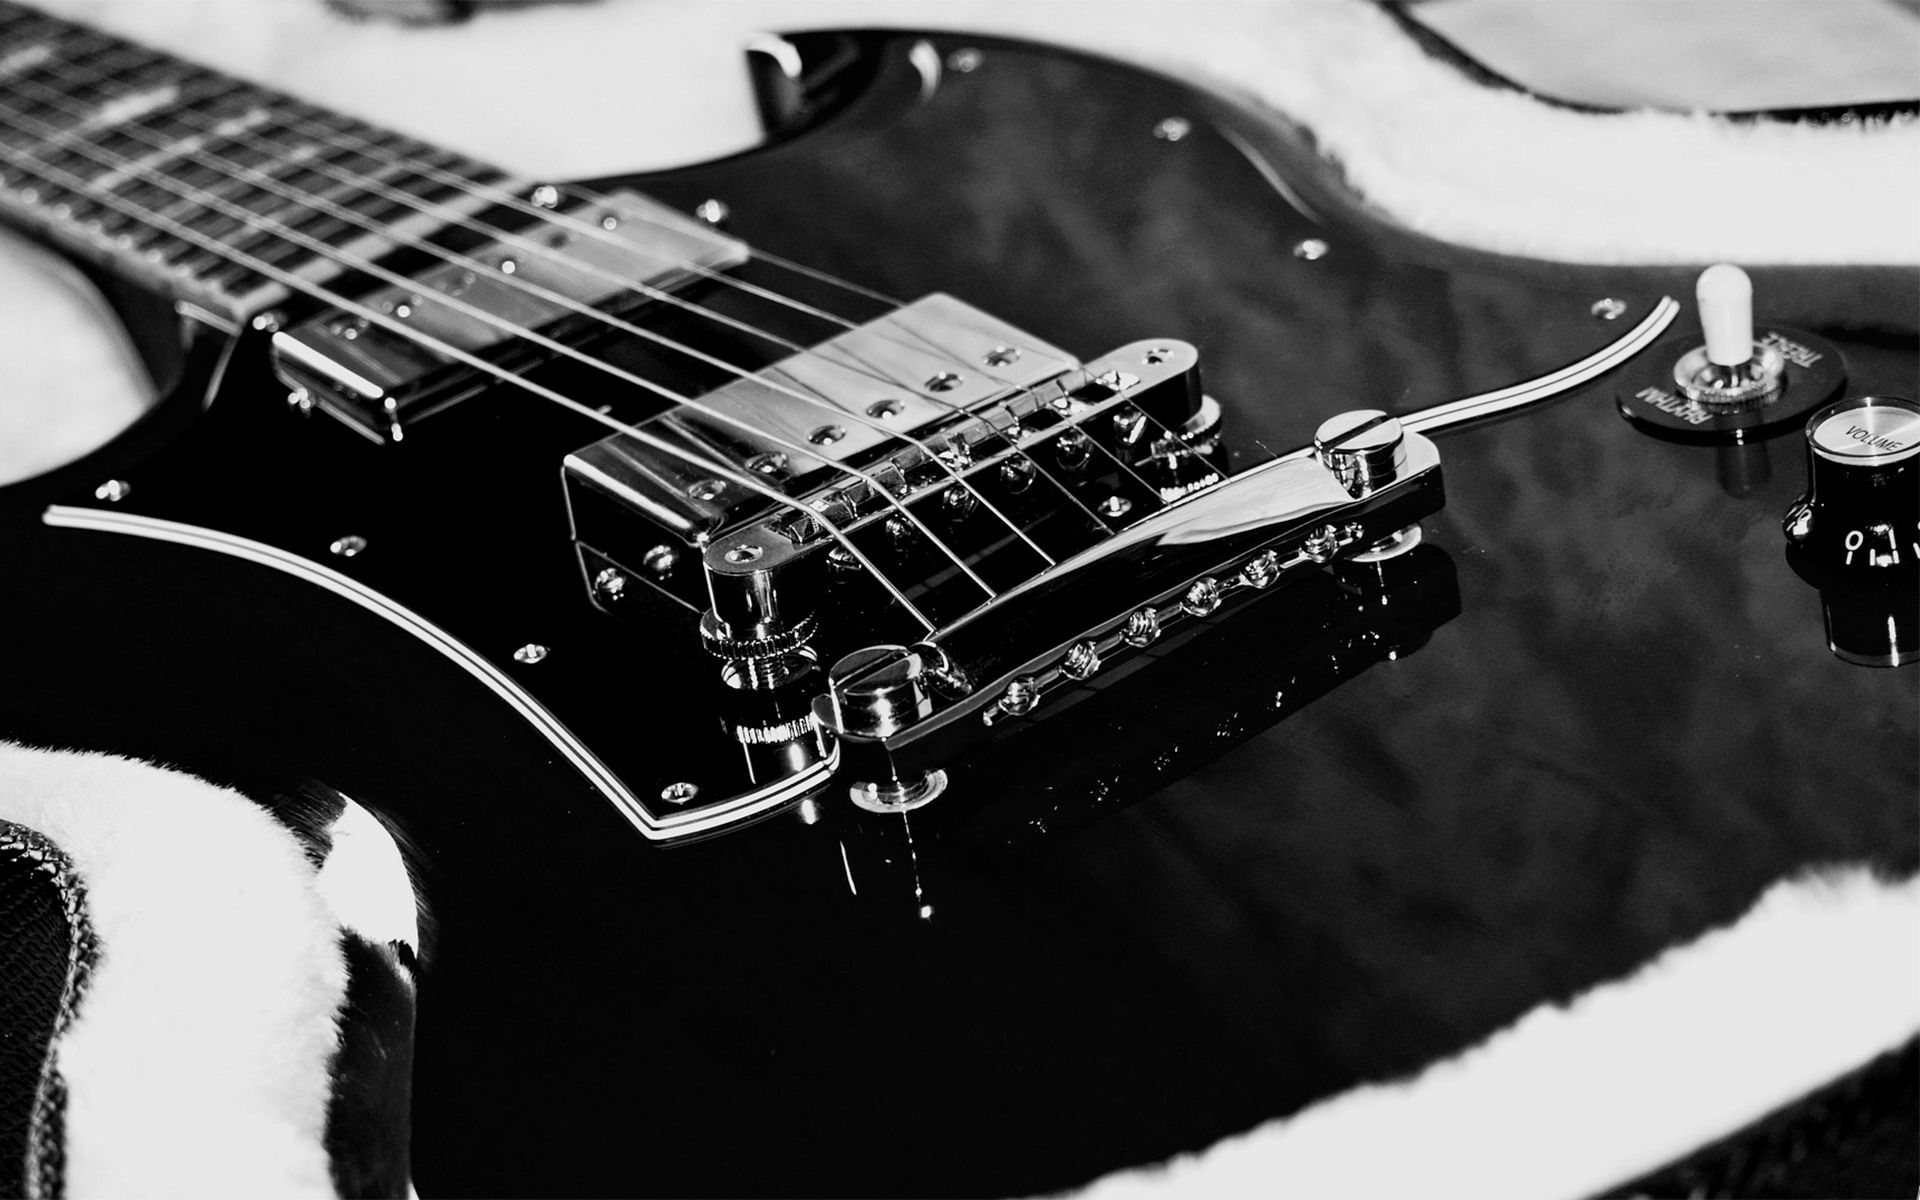 gibson bass guitar wallpaper just starting out with guitar see